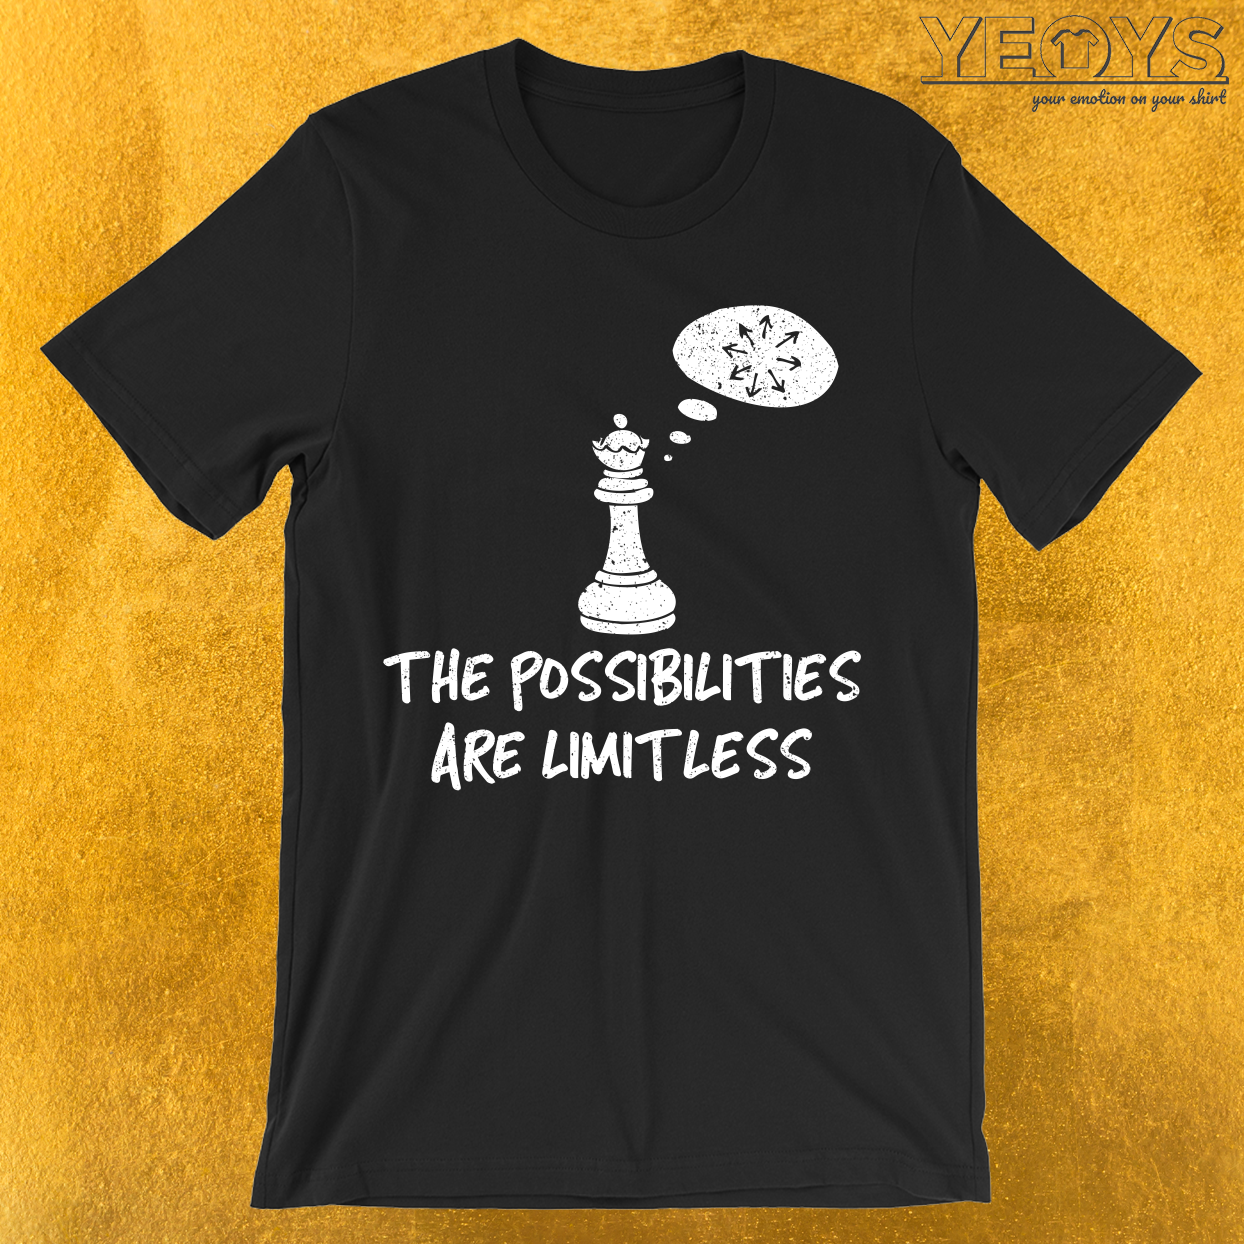 The Possibilities Are Limitless T-Shirt